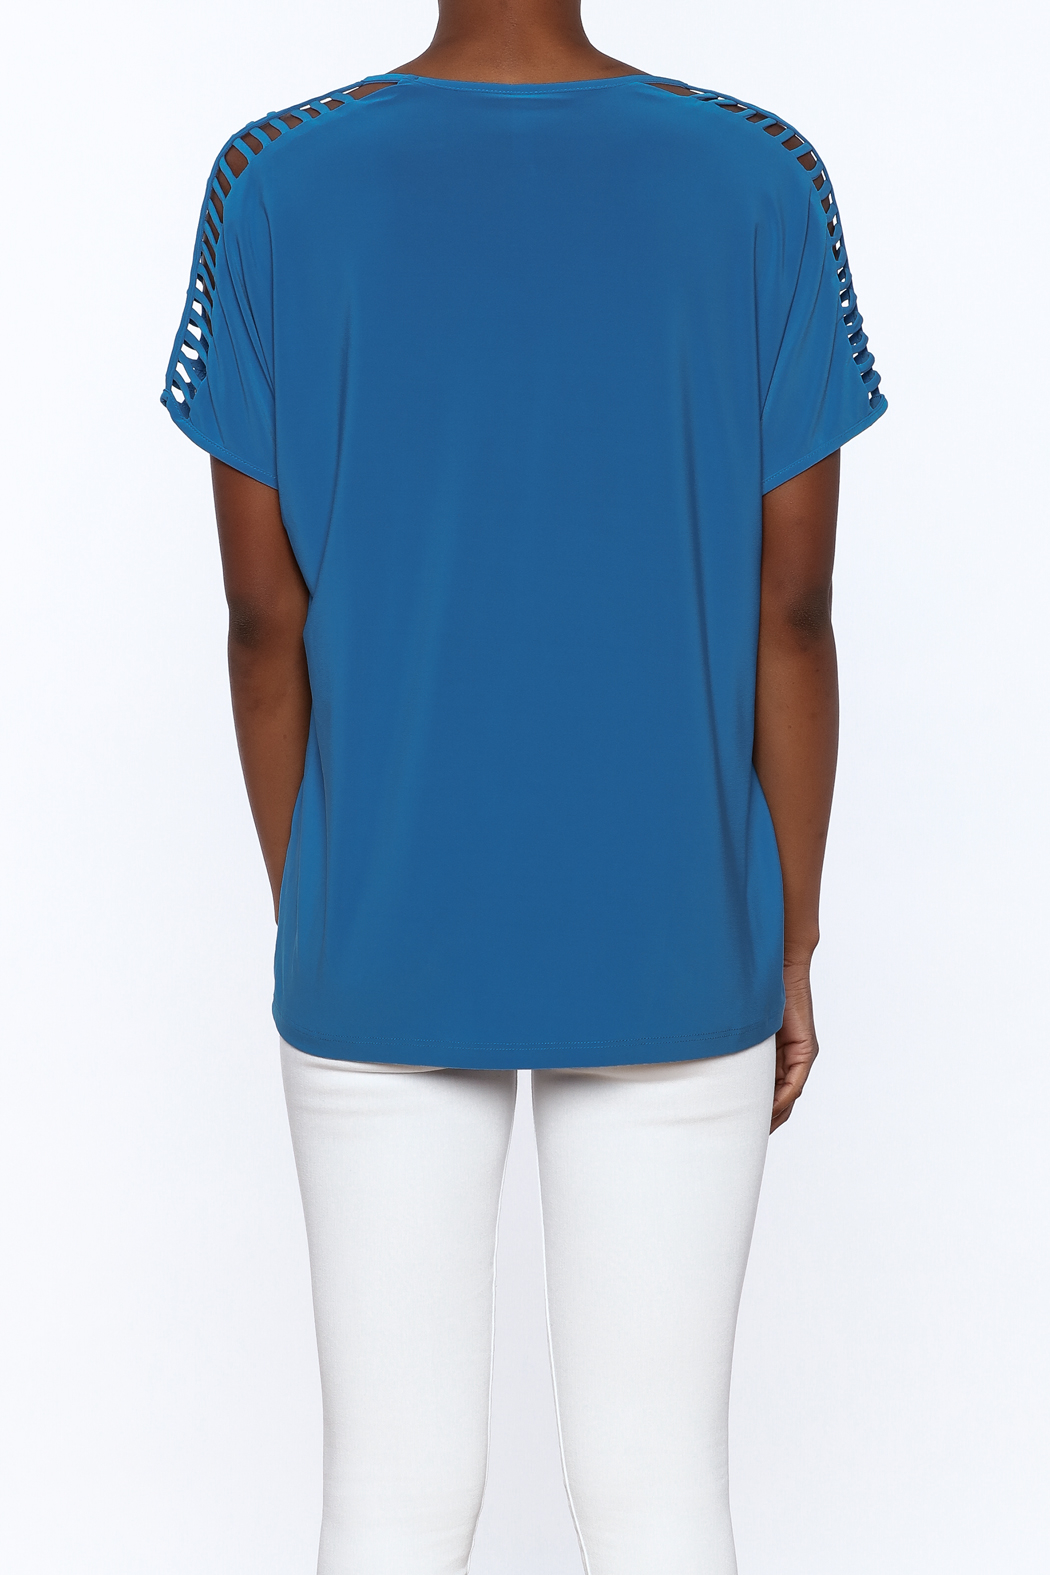 Last Tango Blue Tunic Top - Back Cropped Image